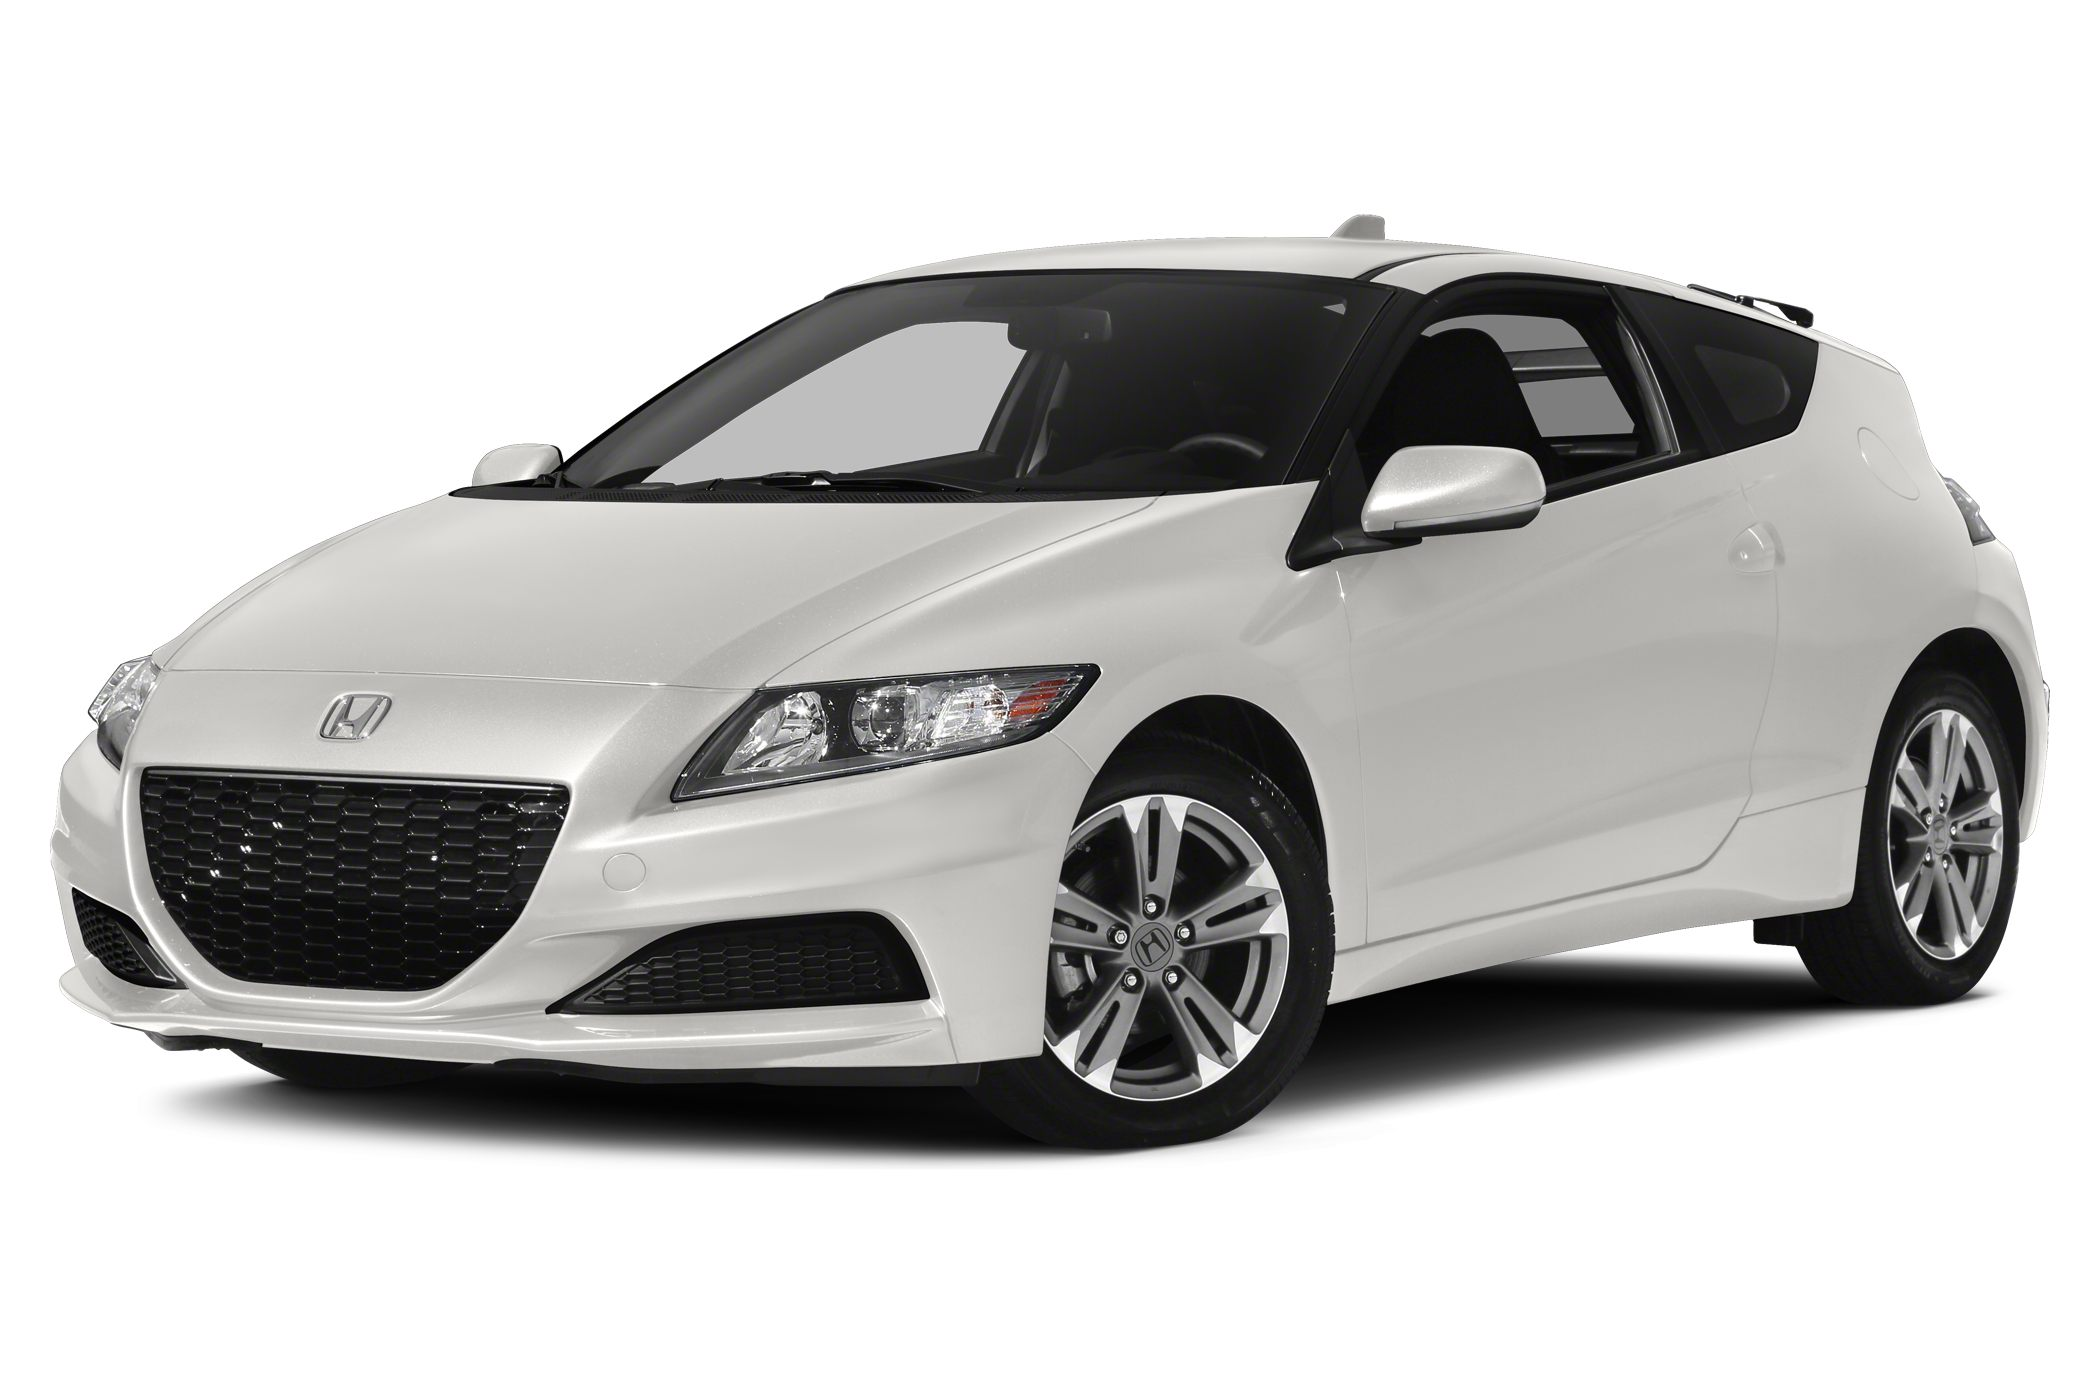 2015 Honda CR-Z Base Coupe for sale in Brooklyn for $21,615 with 16 miles